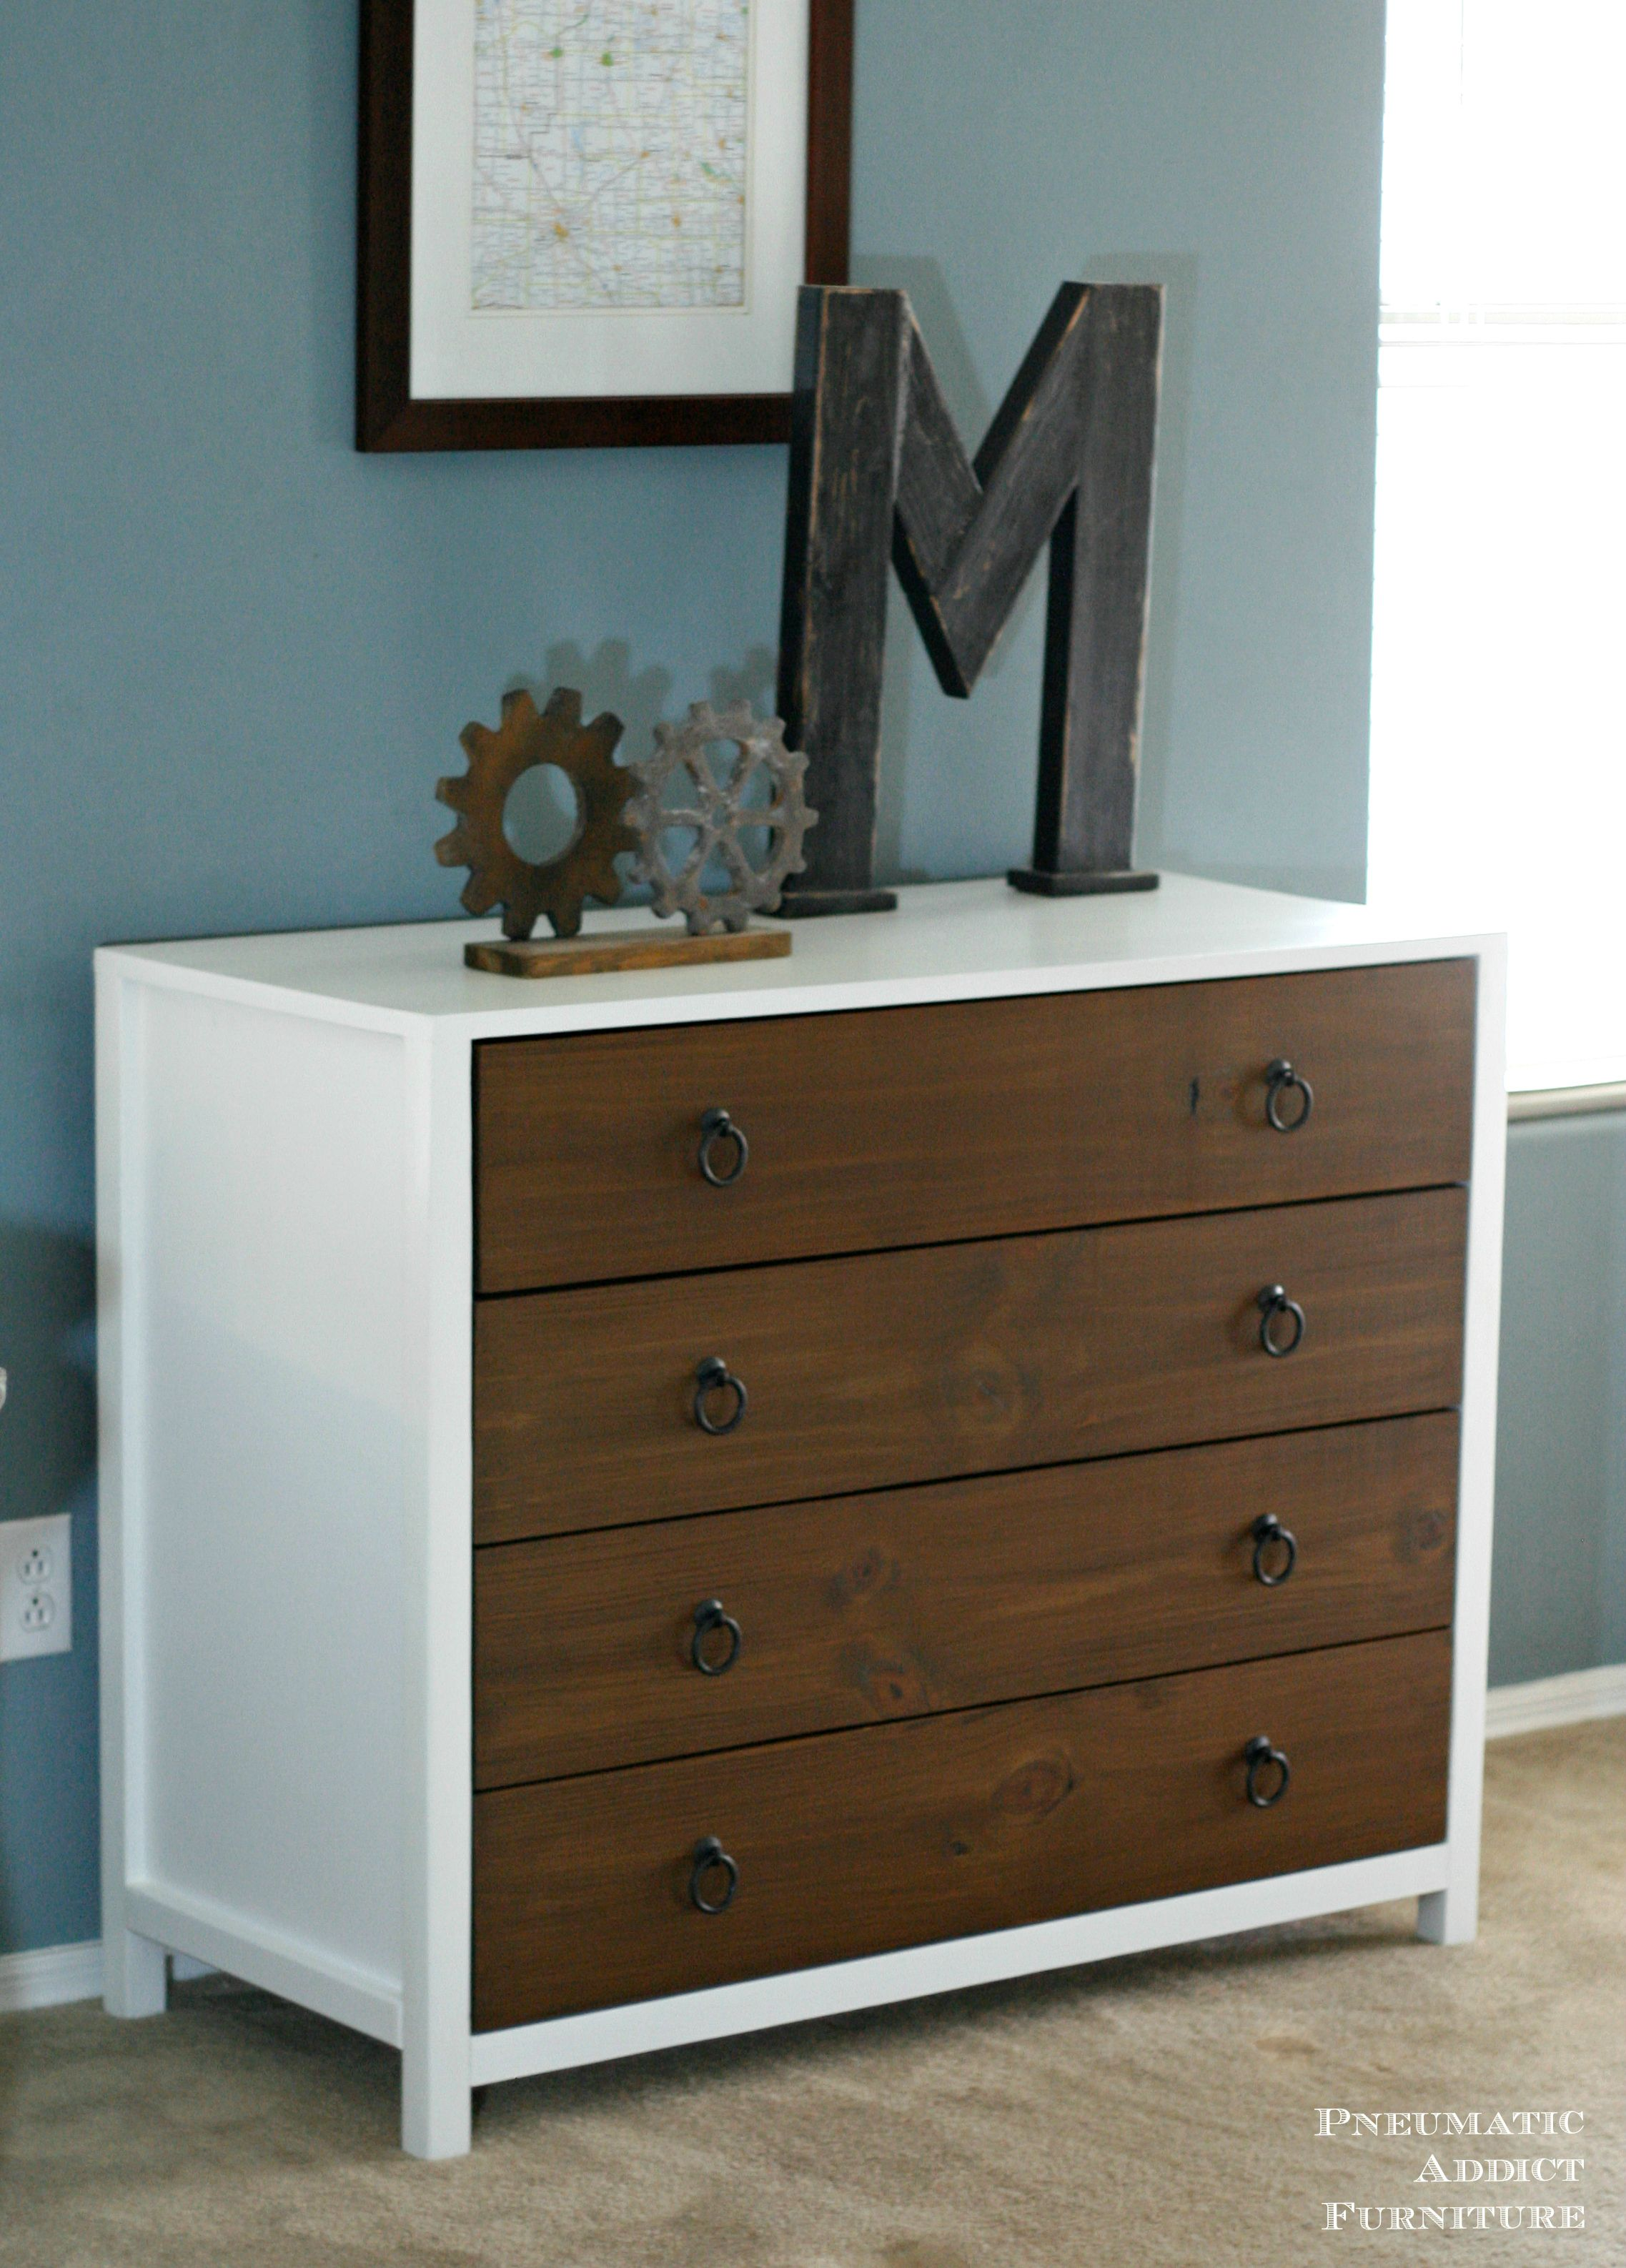 gear art modern easy diy projects furniture plans dresser plans woods